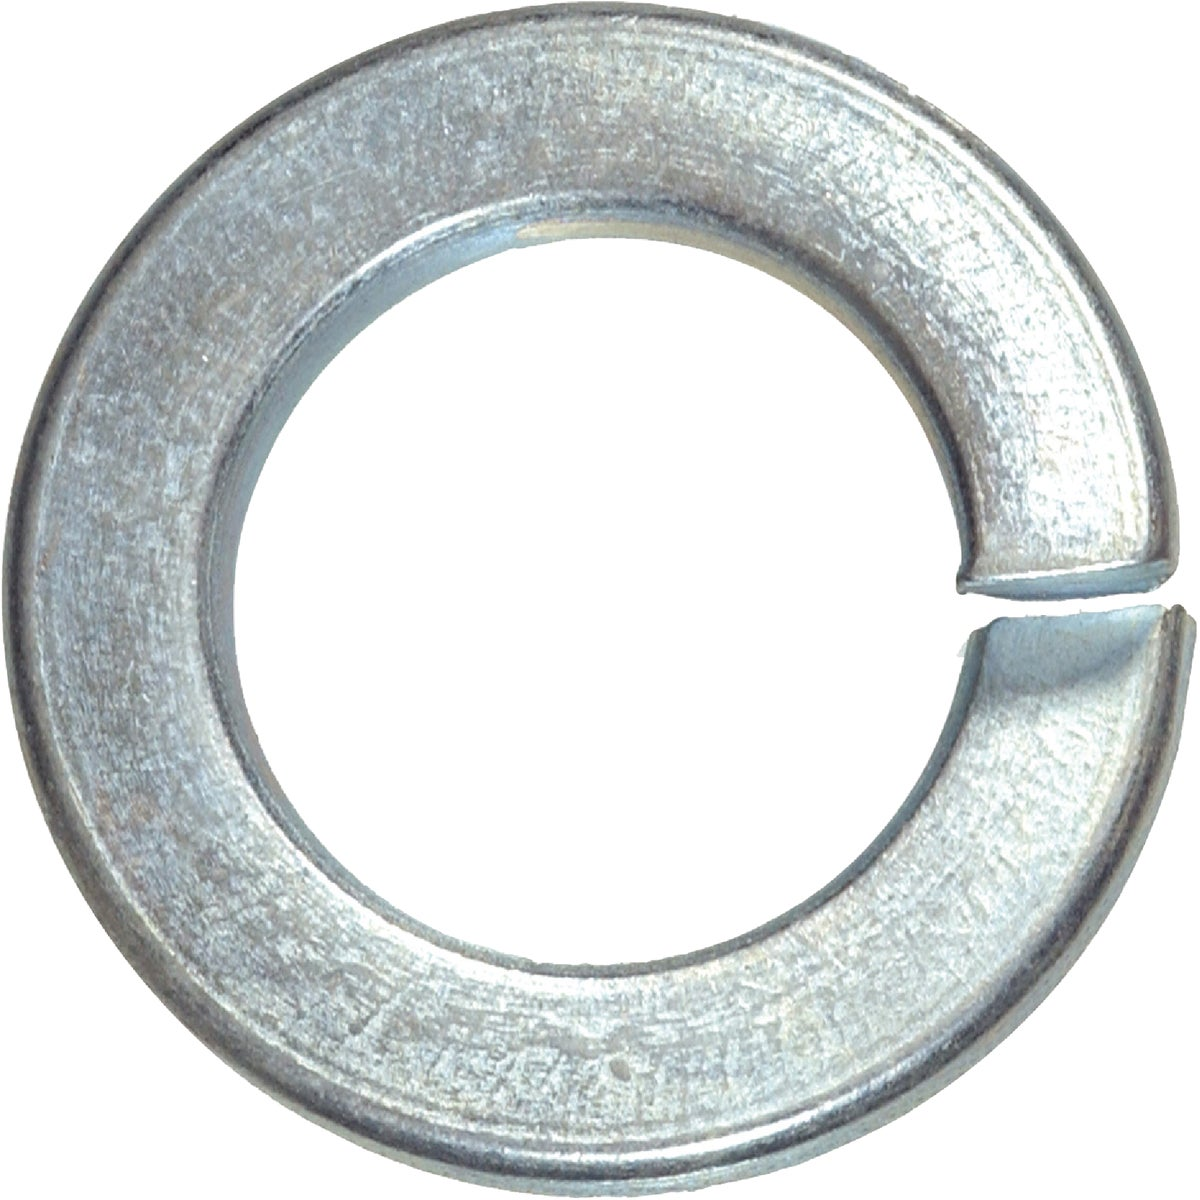 "1/4"" STEEL LOCK WASHER - 124359 by Hillman Fastener"